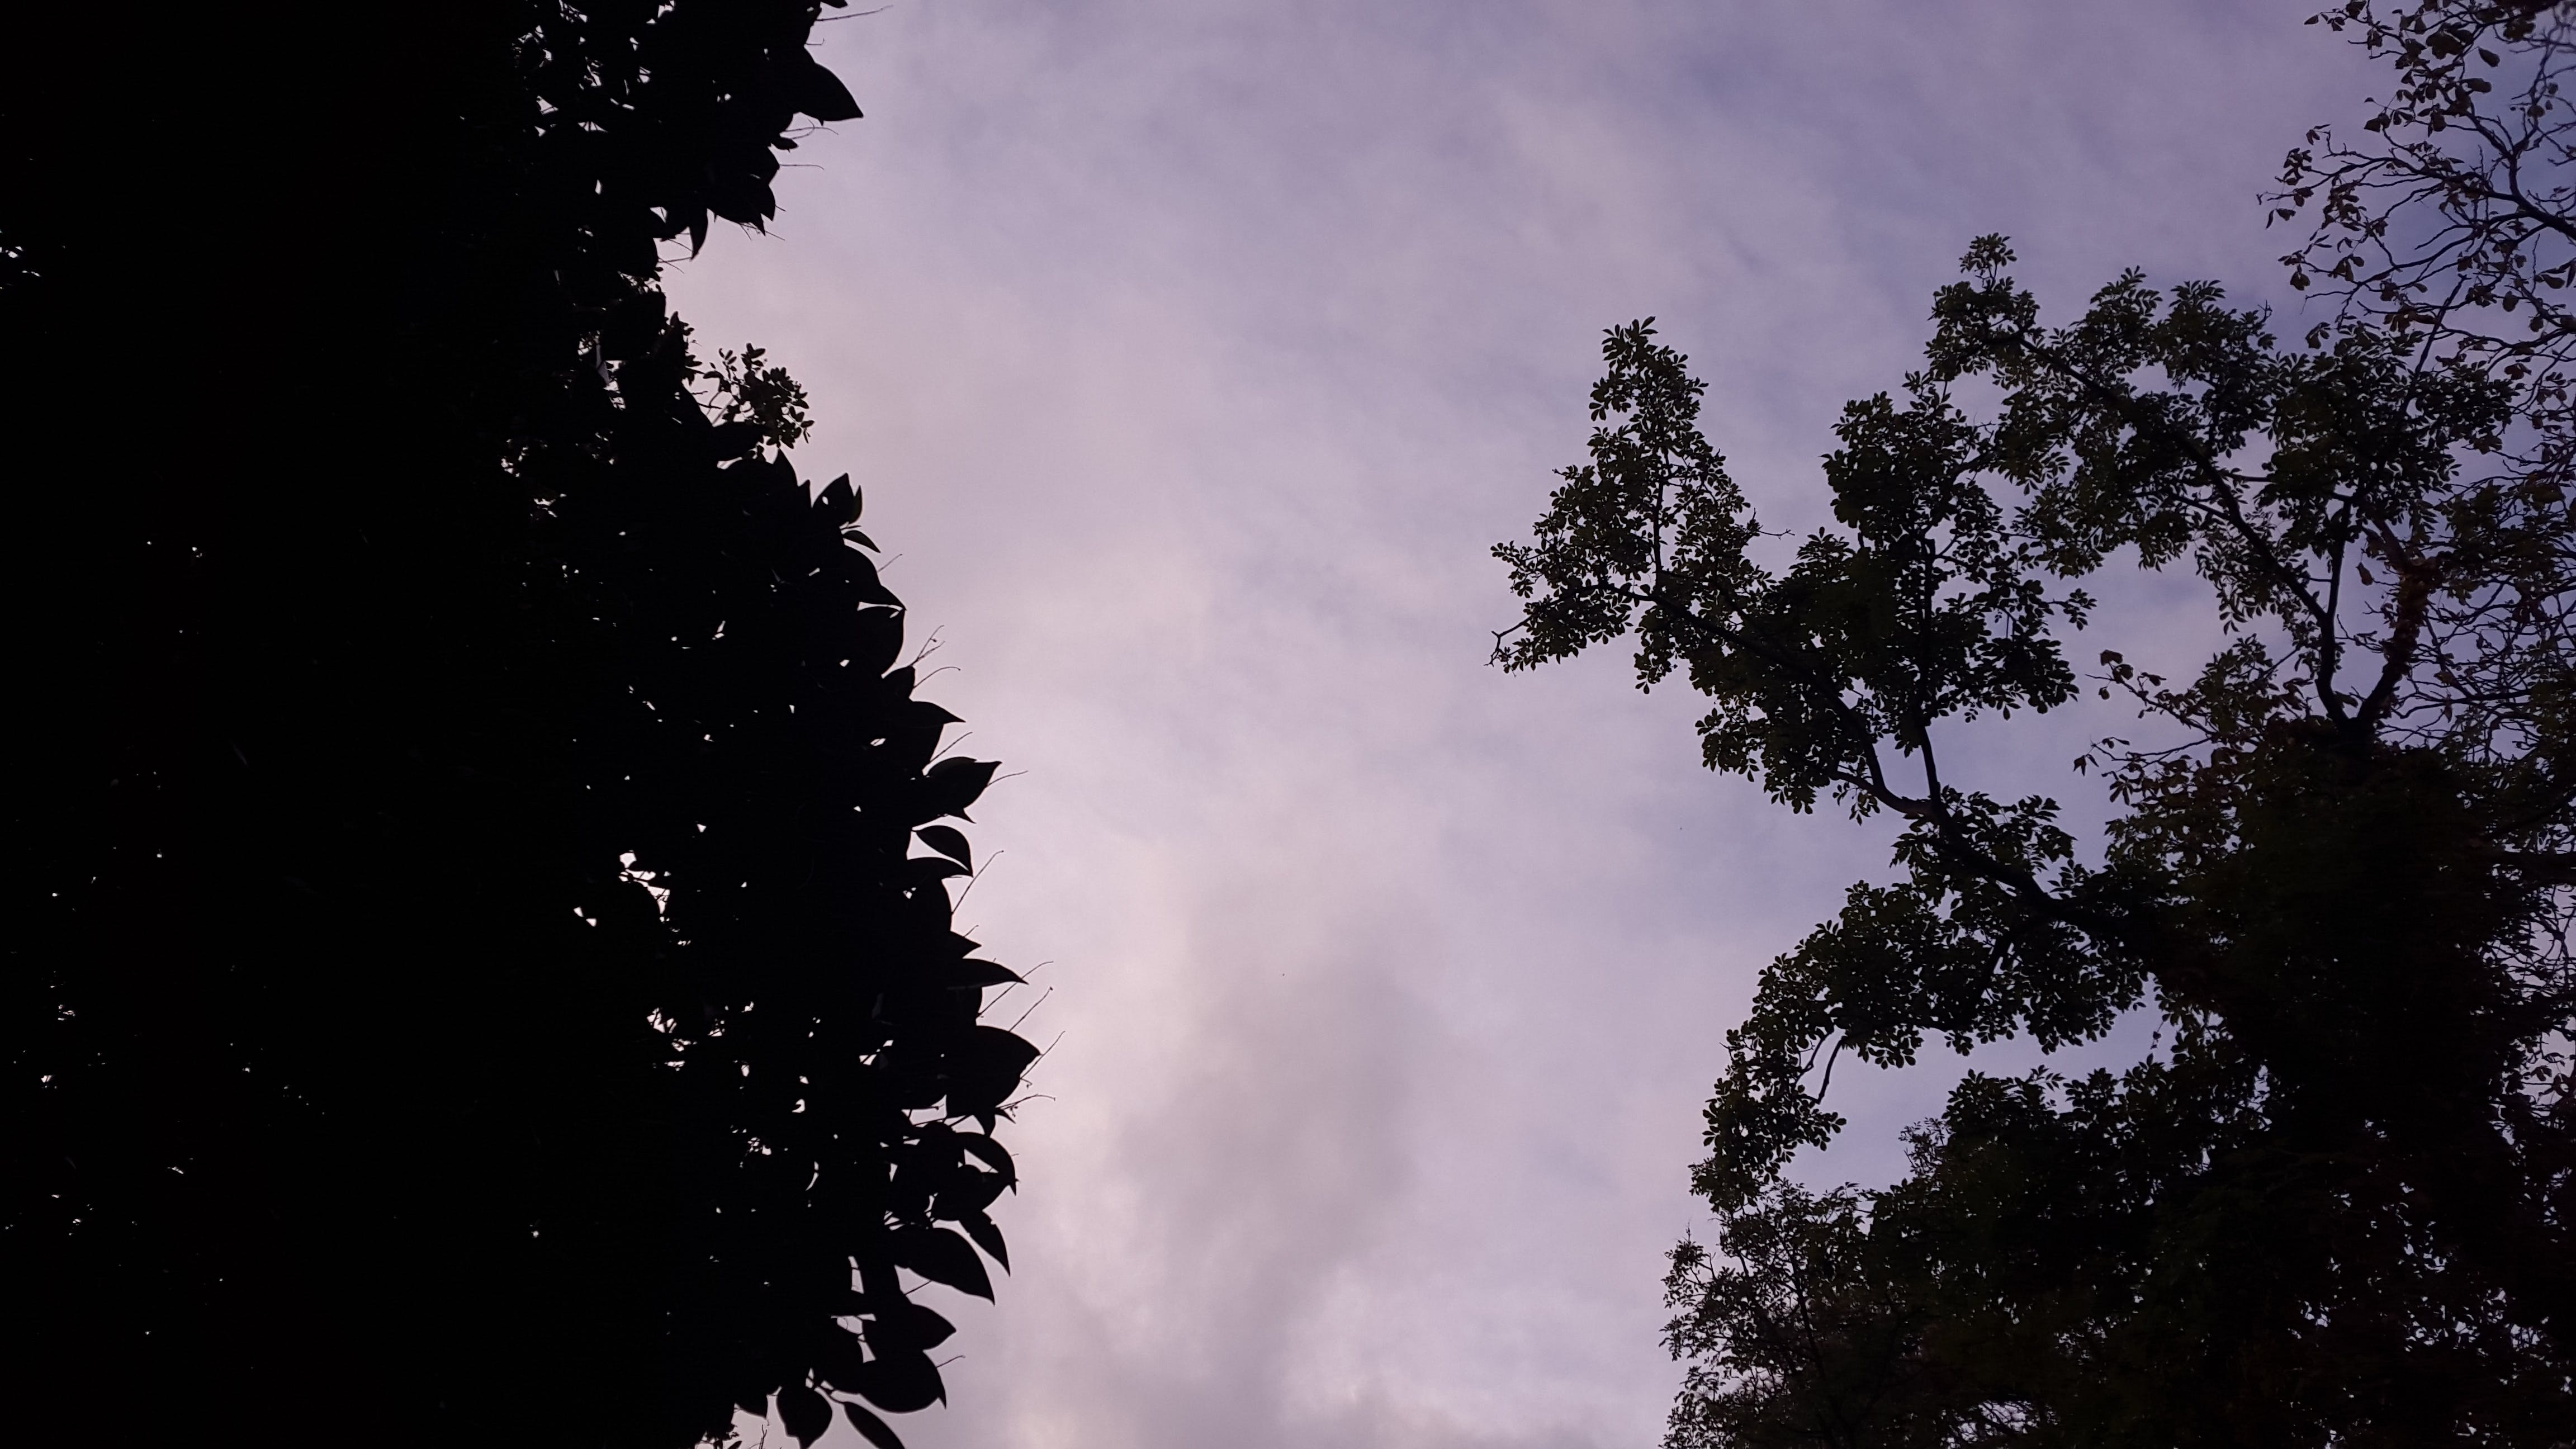 Low Angle Photography of Silhouette of Trees Under Calm Sky